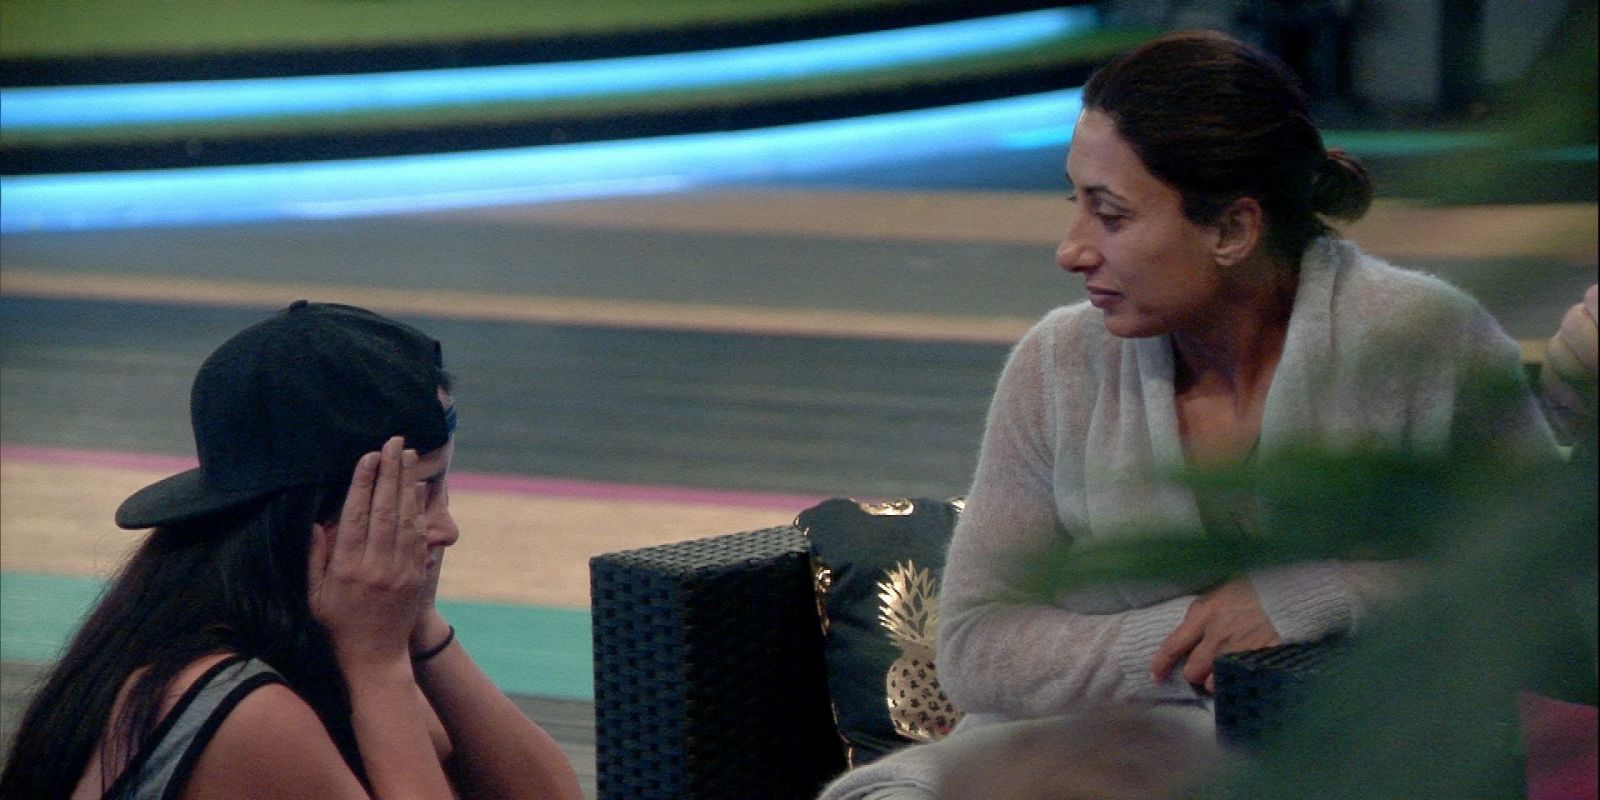 celebrity big brother: ofcom receives 86 complaints after marnie